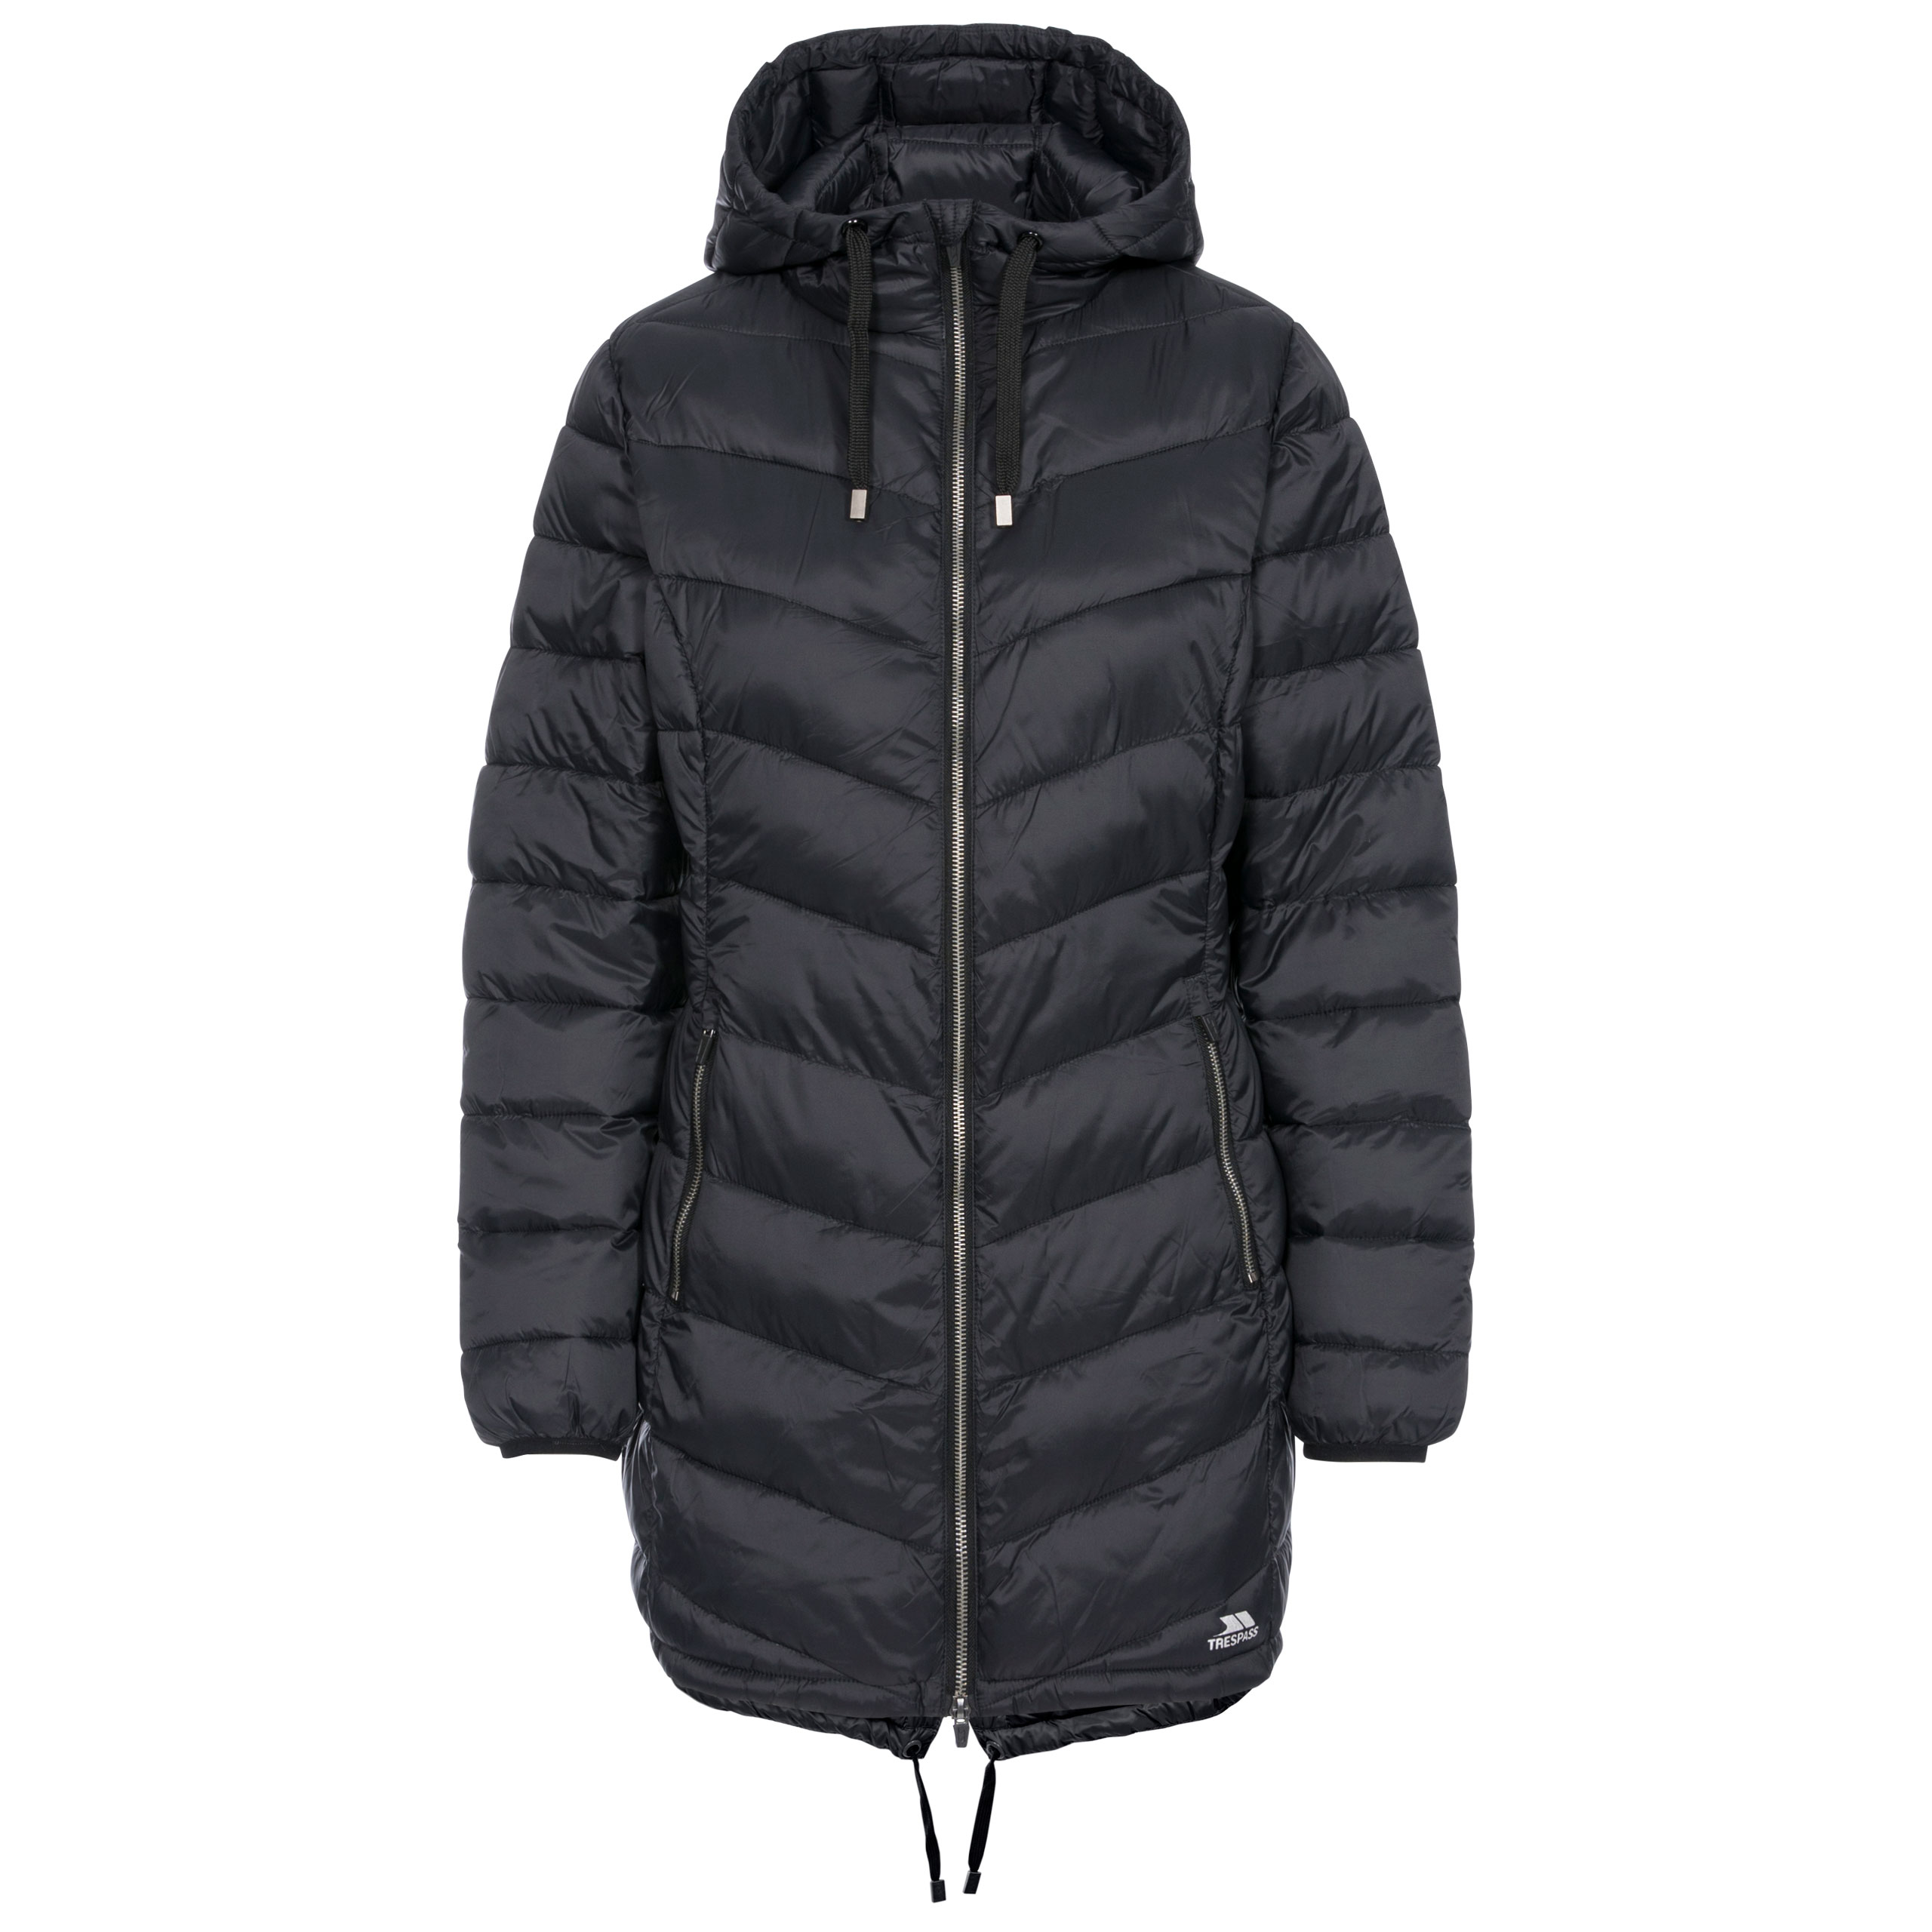 Trespass-Rianna-Womens-Padded-Jacket-Puffer-Coat-With-Hood-For-Ladies thumbnail 15